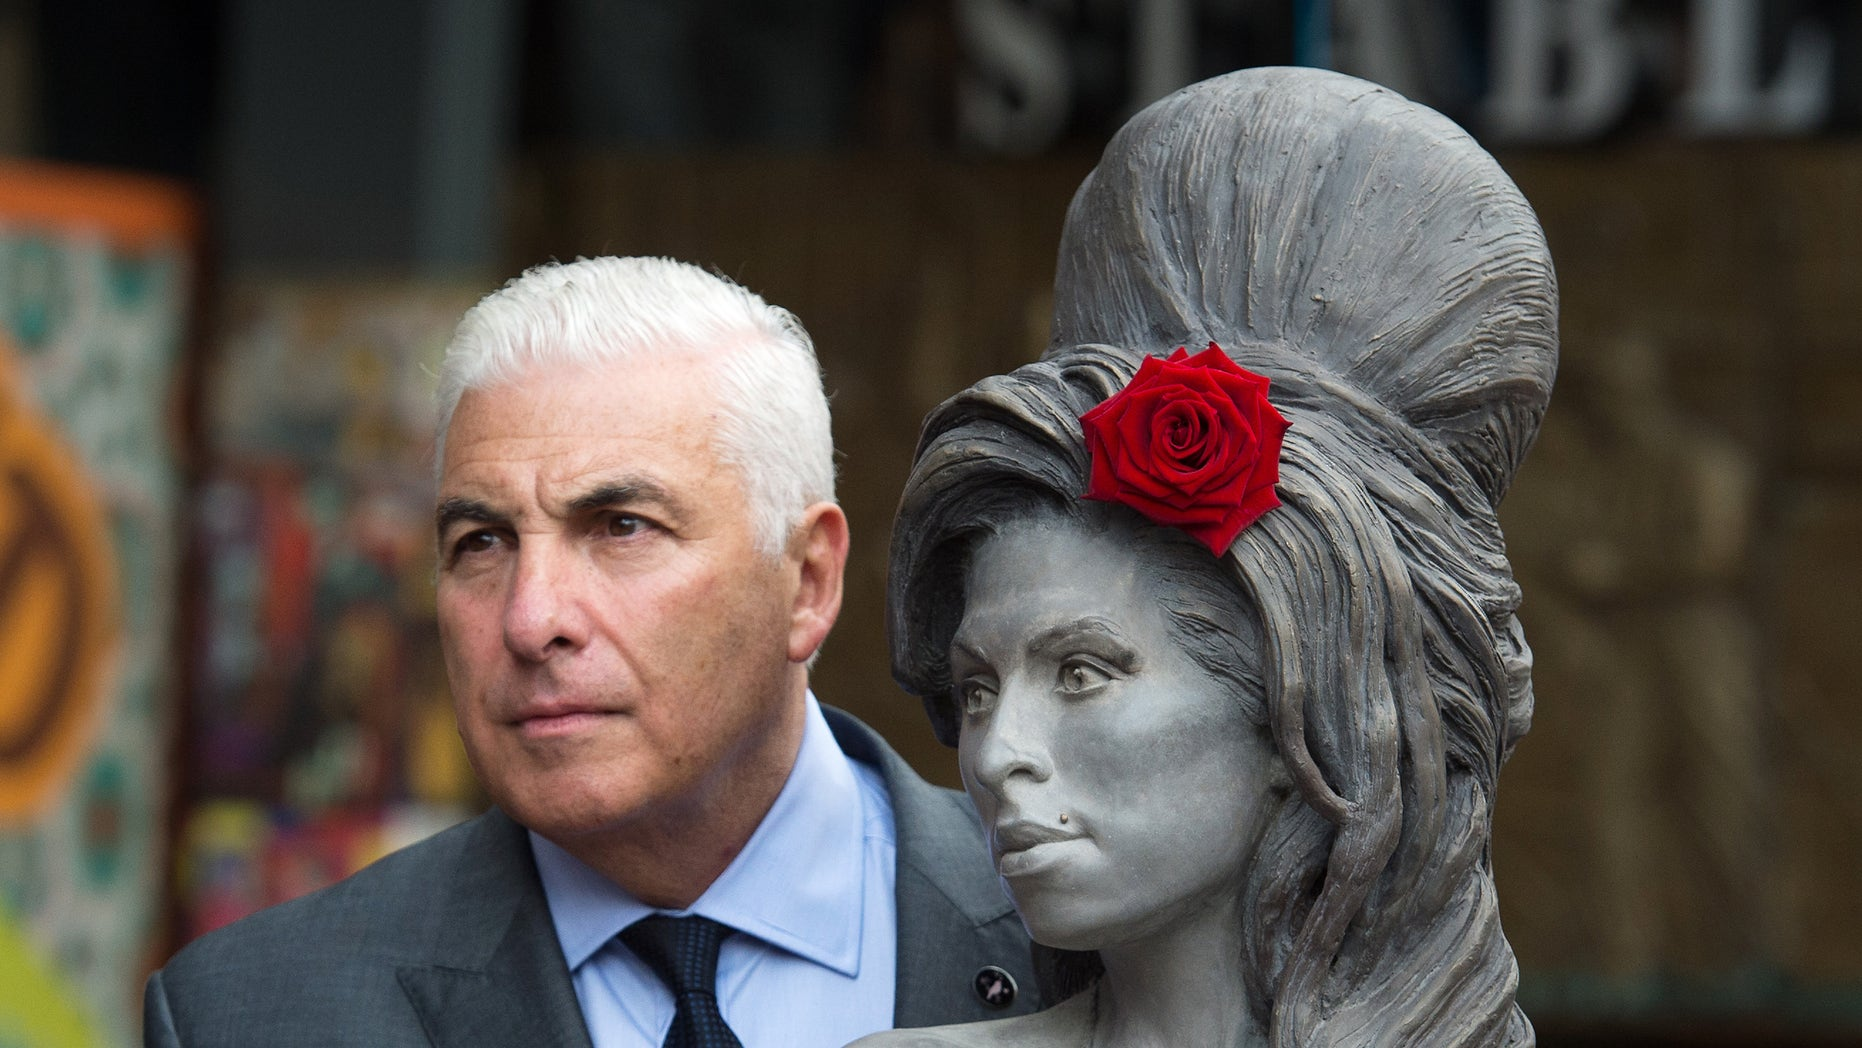 September 14, 2014. Mitch Winehouse poses for a picture with a statue of his late daughter, Amy Winehouse after it was unveiled in Camden's Stables Market, in London, England.